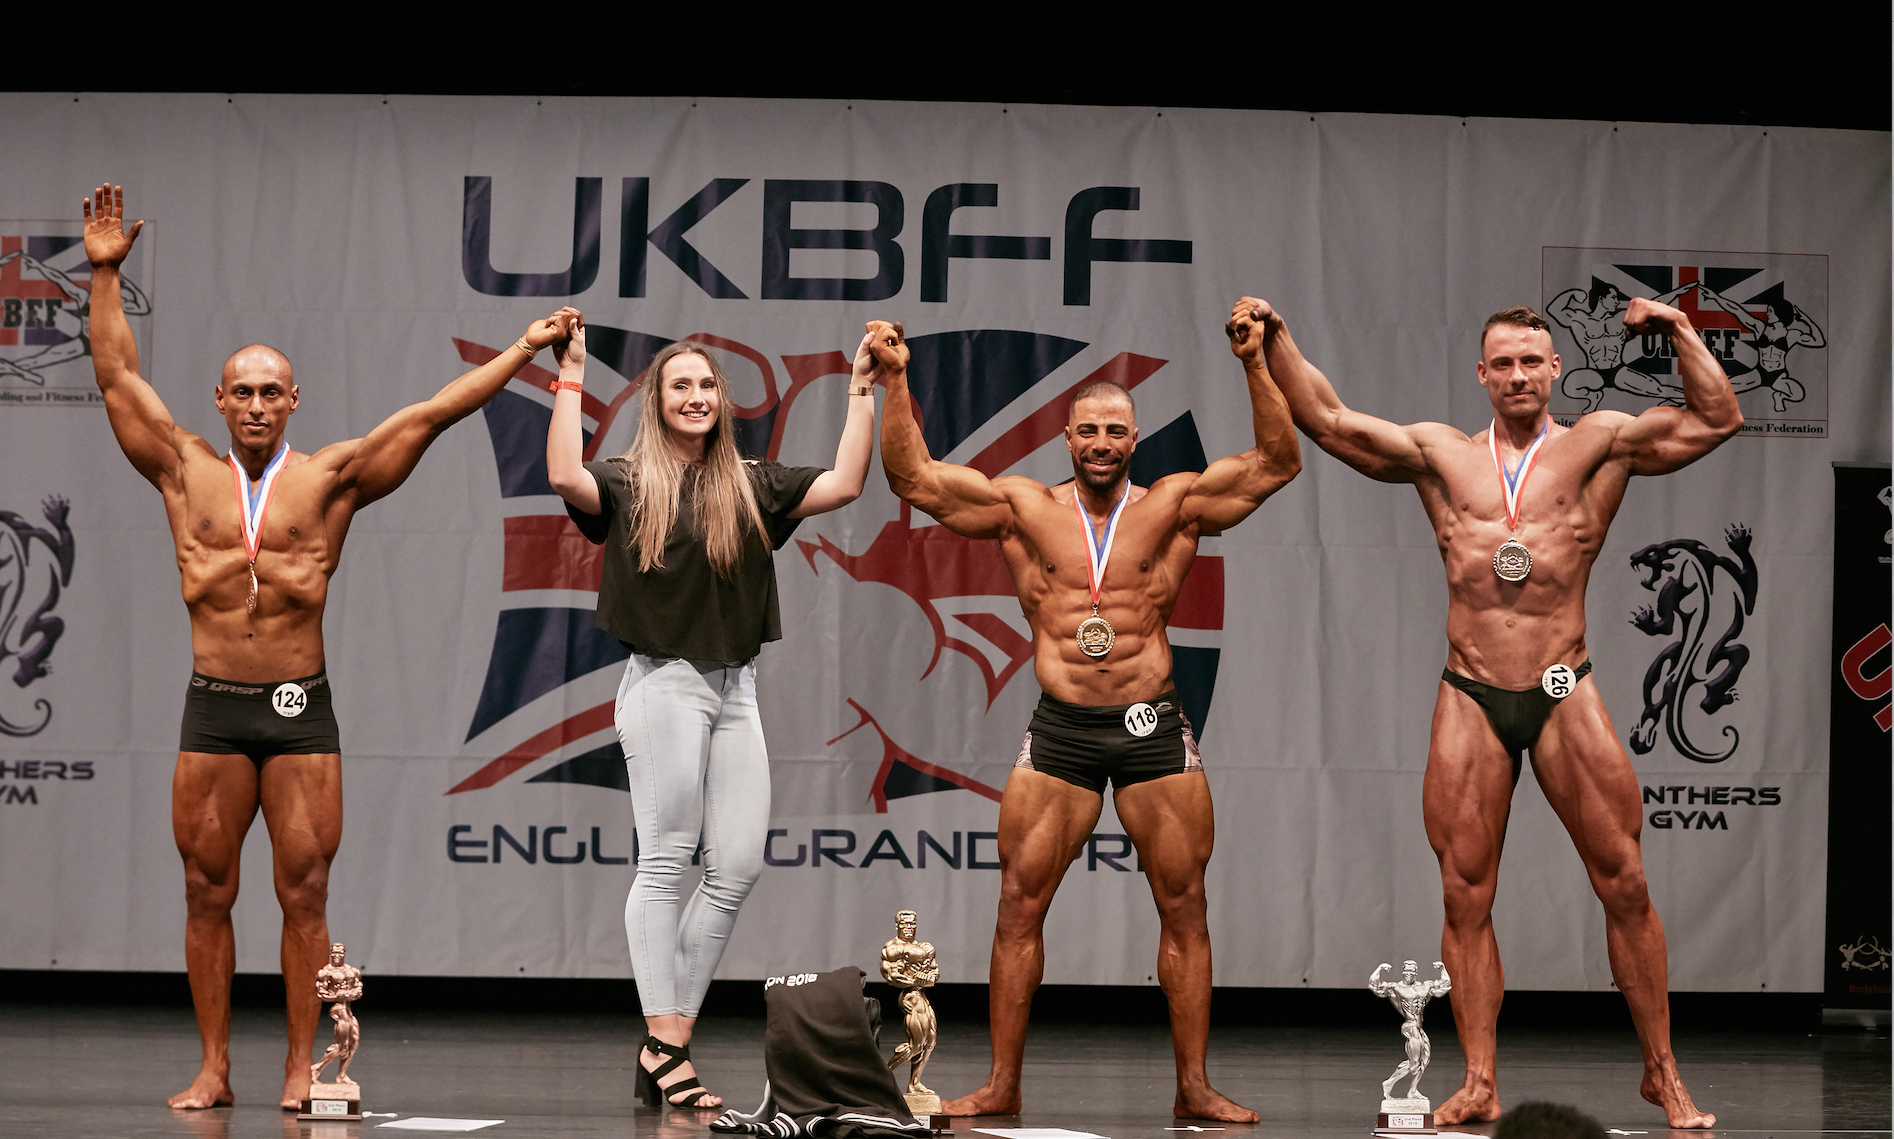 IFBB Elite Pro Connie Slyziut awards the top three places in classic physique to (from left) Miz Rahman, Mahmoud Elmawardy and Michal Uliwiak. PHOTO: by Christopher Bailey